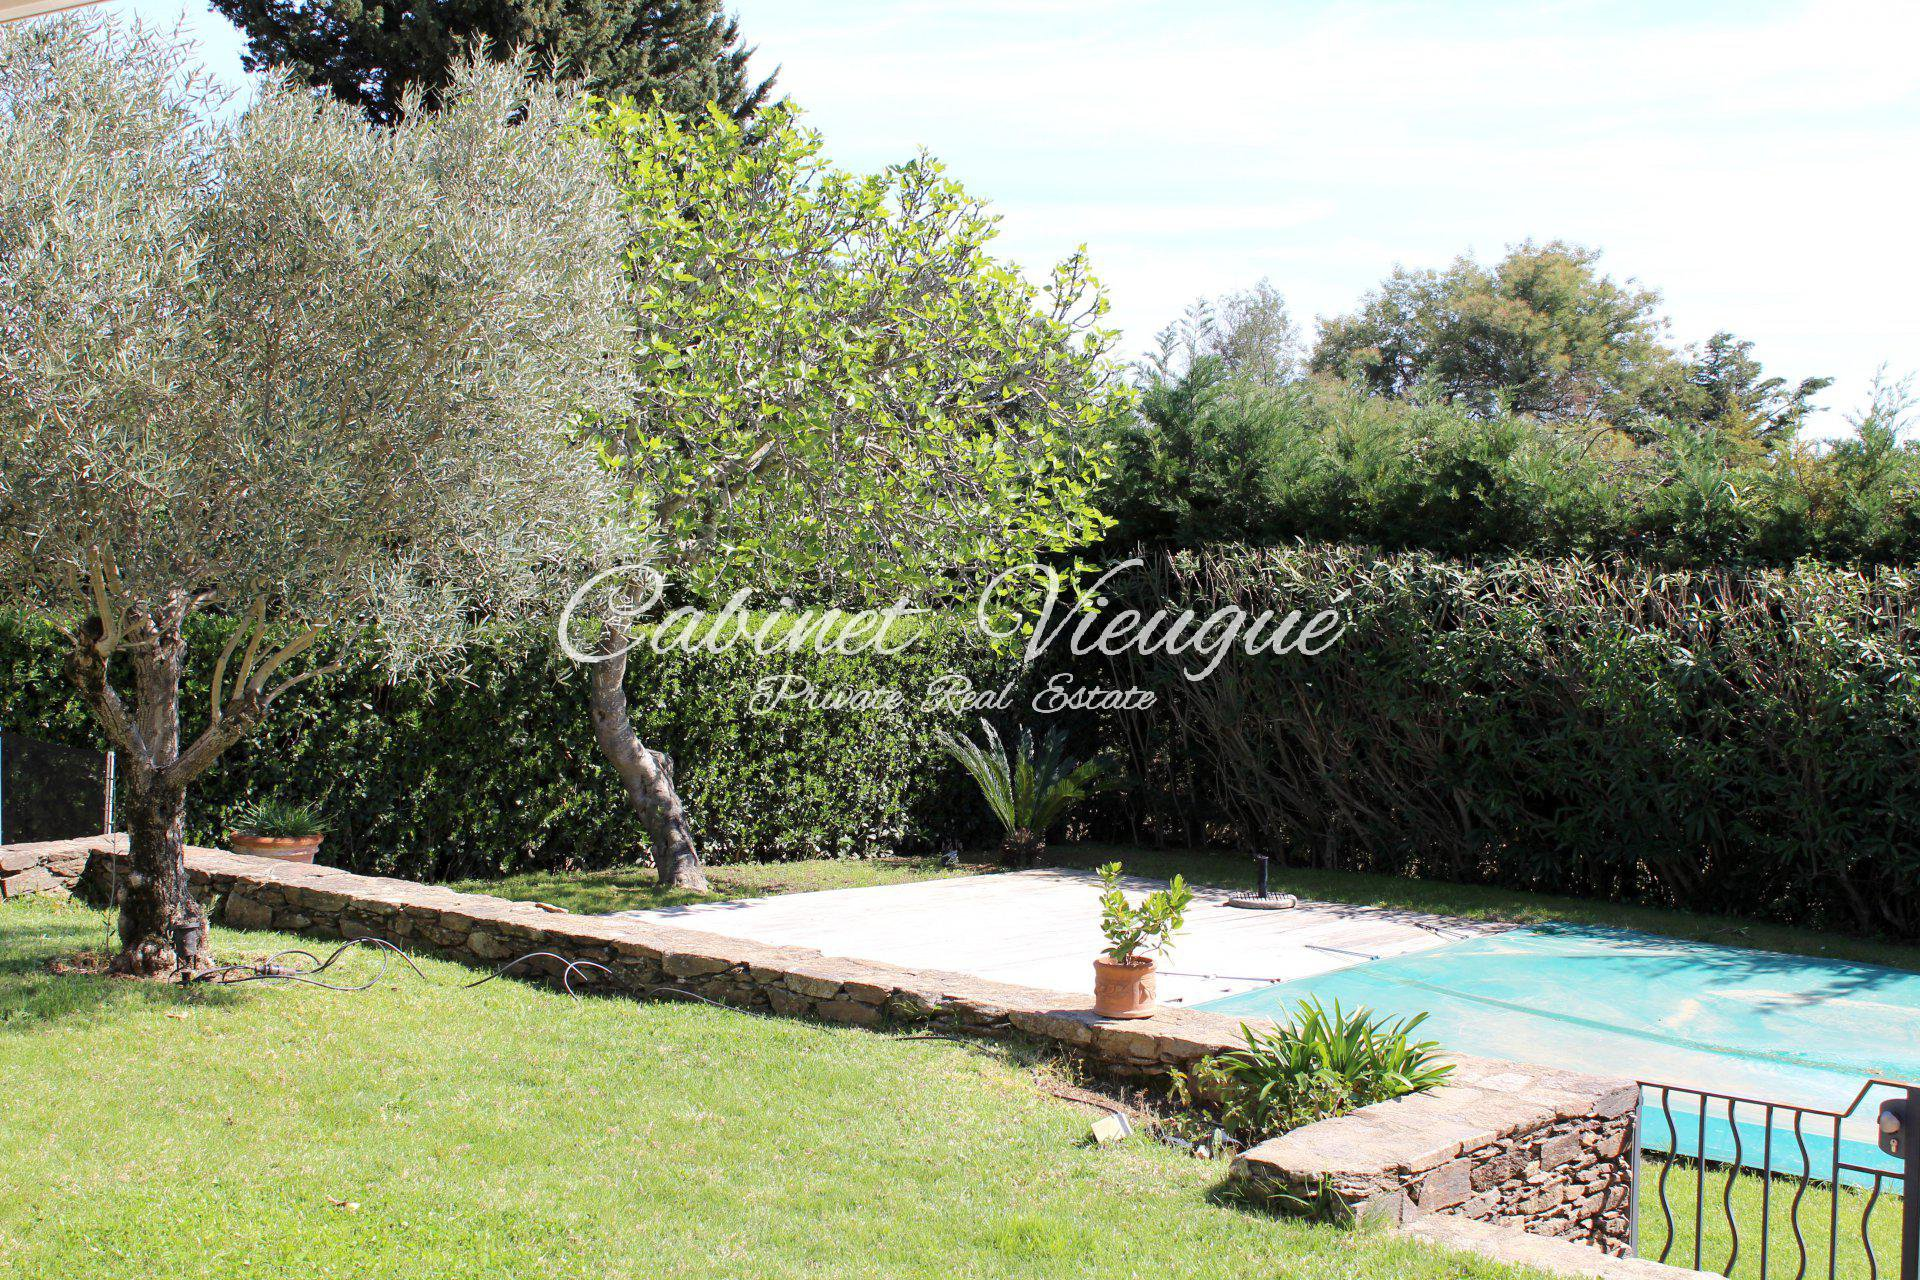 Provençal villa with 4 bedrooms - Gulf of Saint-Tropez